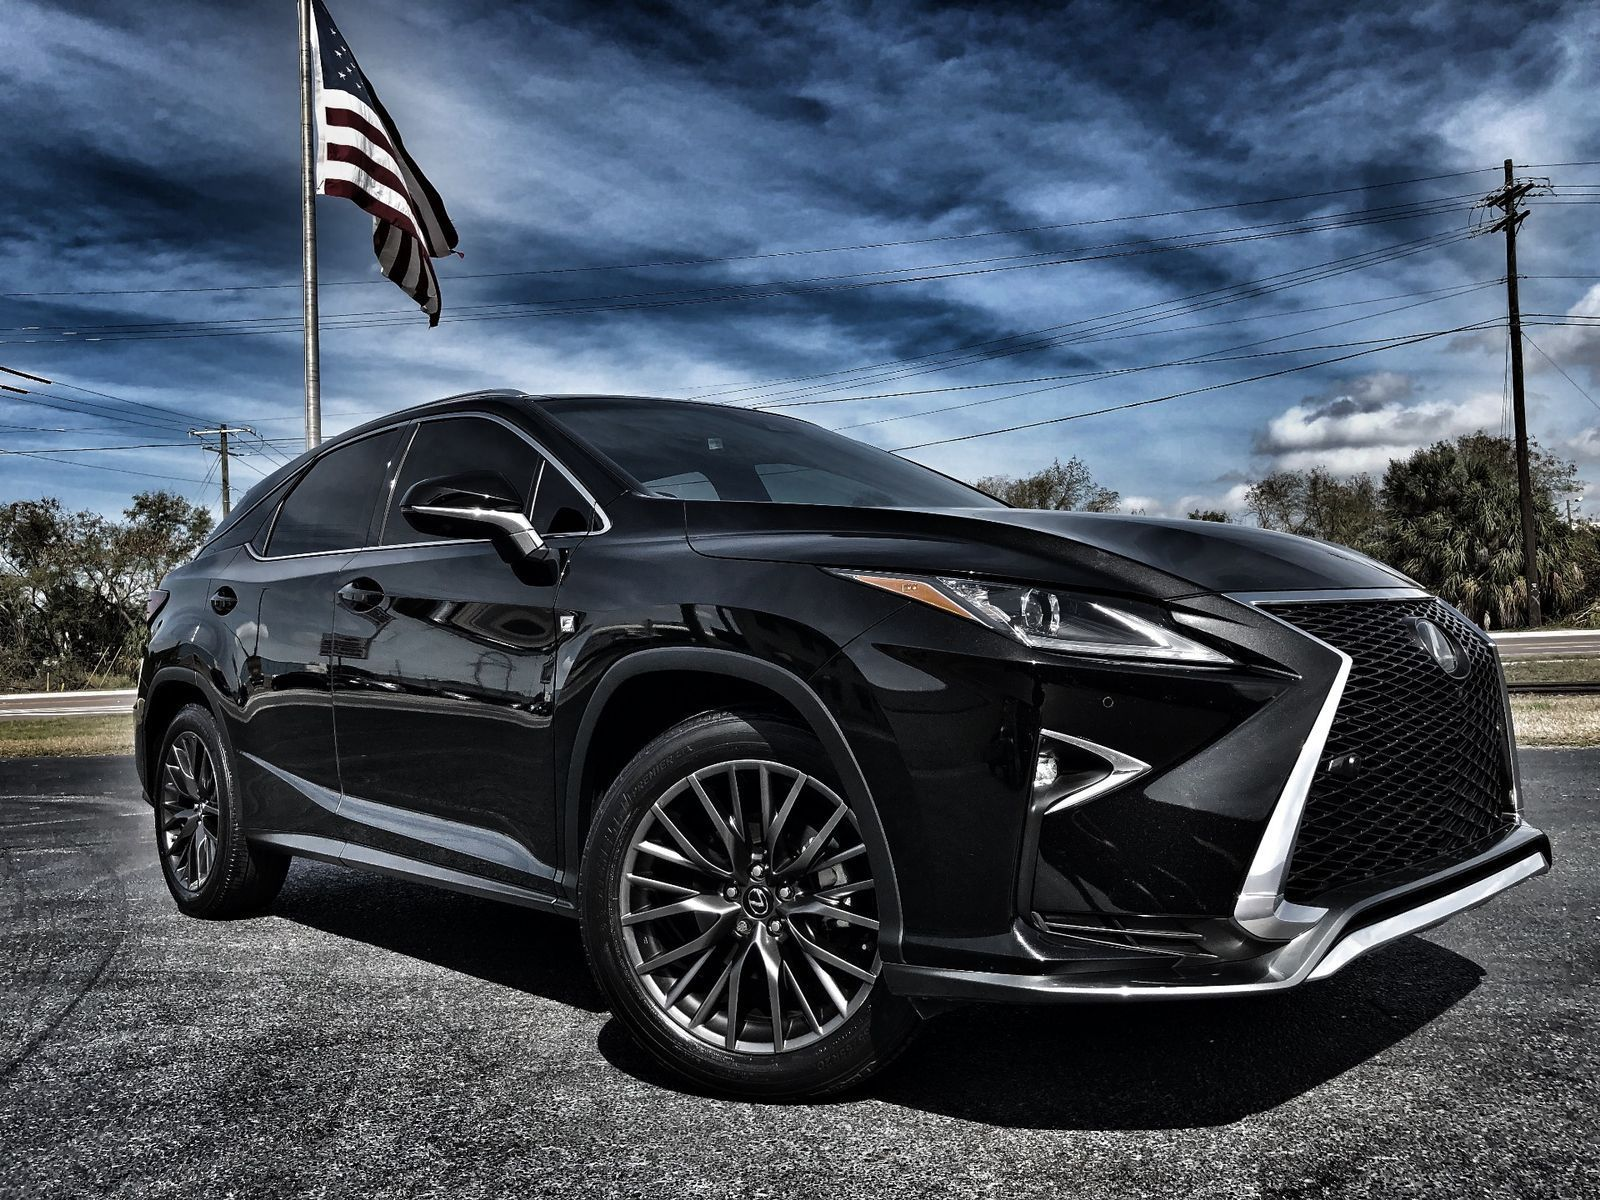 Awesome 2016 Lexus Rx F Sport Rx350 Black Loaded Caviar Leather Pano 12 Nav 59k New 1 Owner We Finance Fla 2017 2018